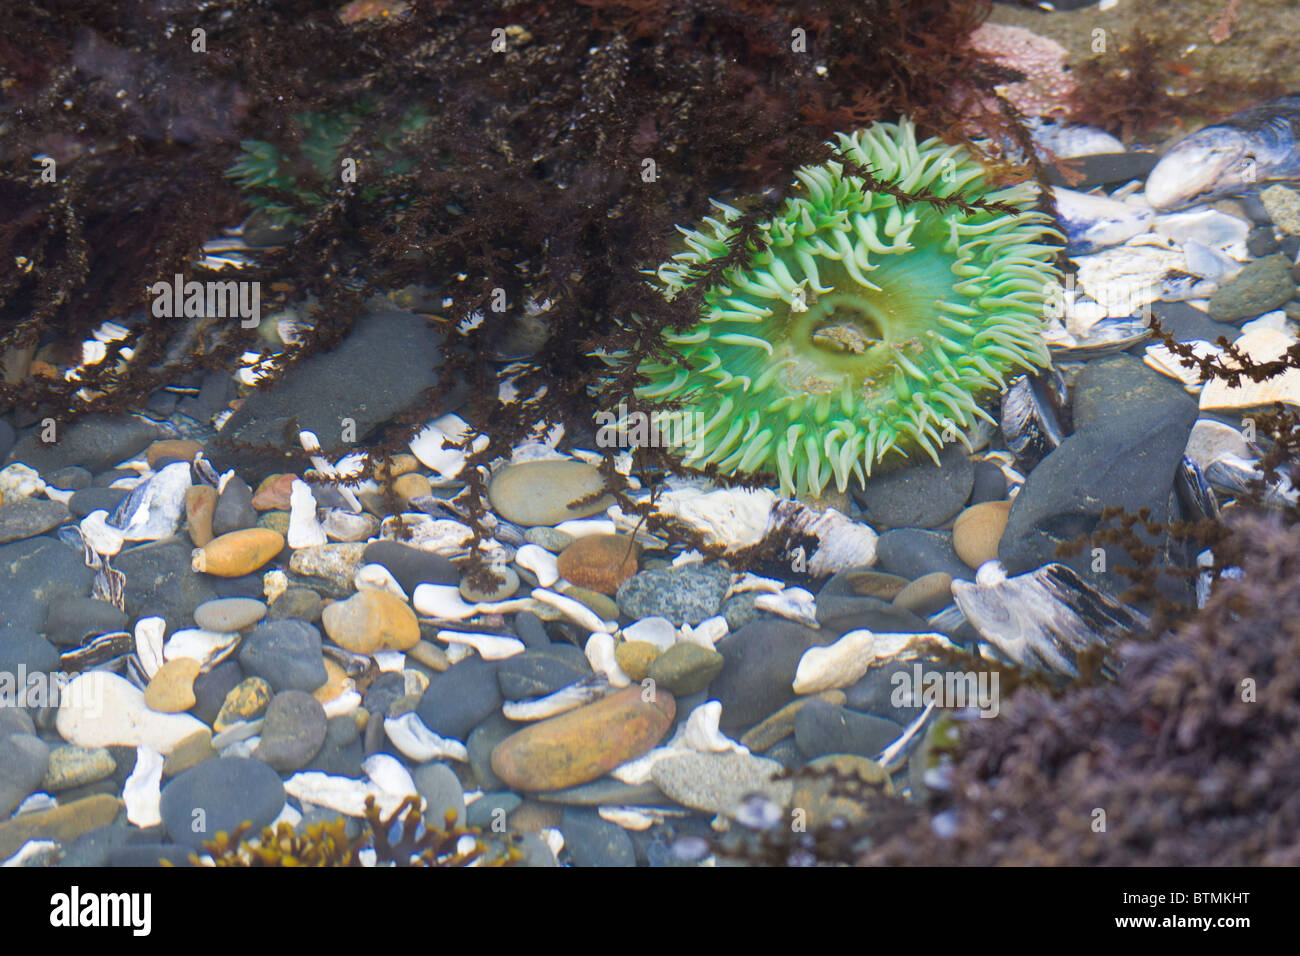 Tidepool on beach at Seal Rock State Park on the Pacific Ocean coast of Oregon - Stock Image